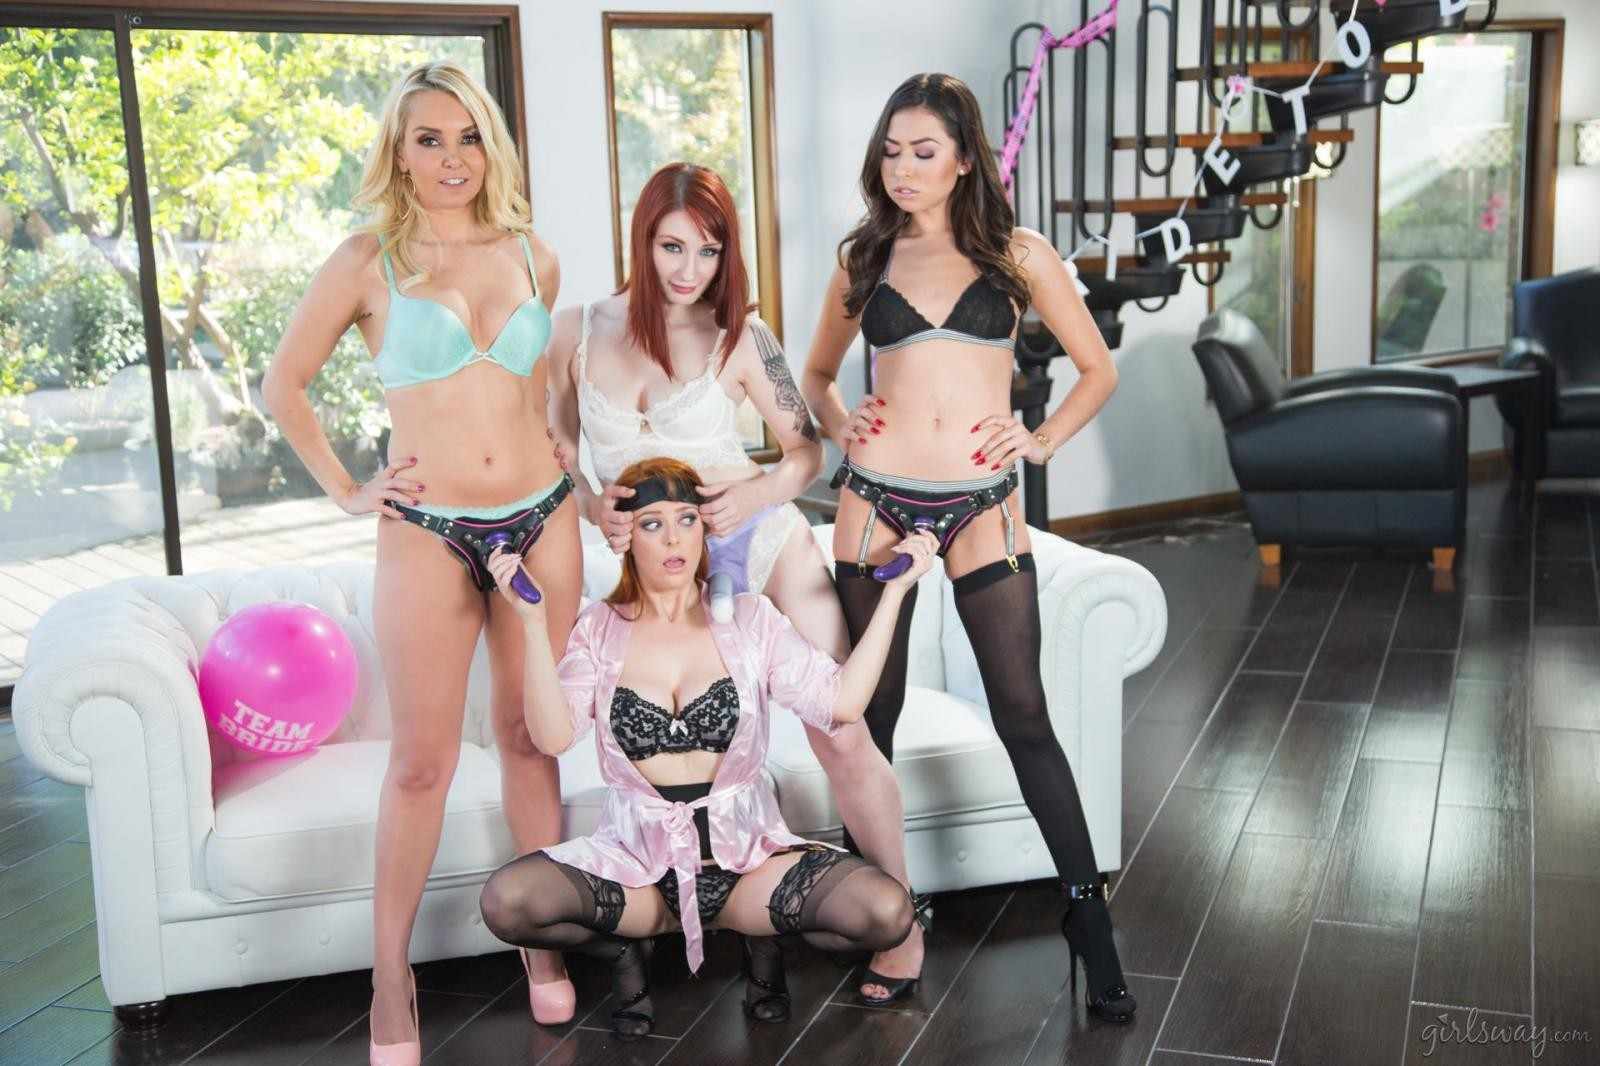 Violet Monroe: Strap-On Stories: Gangbang Bachelorette - 3